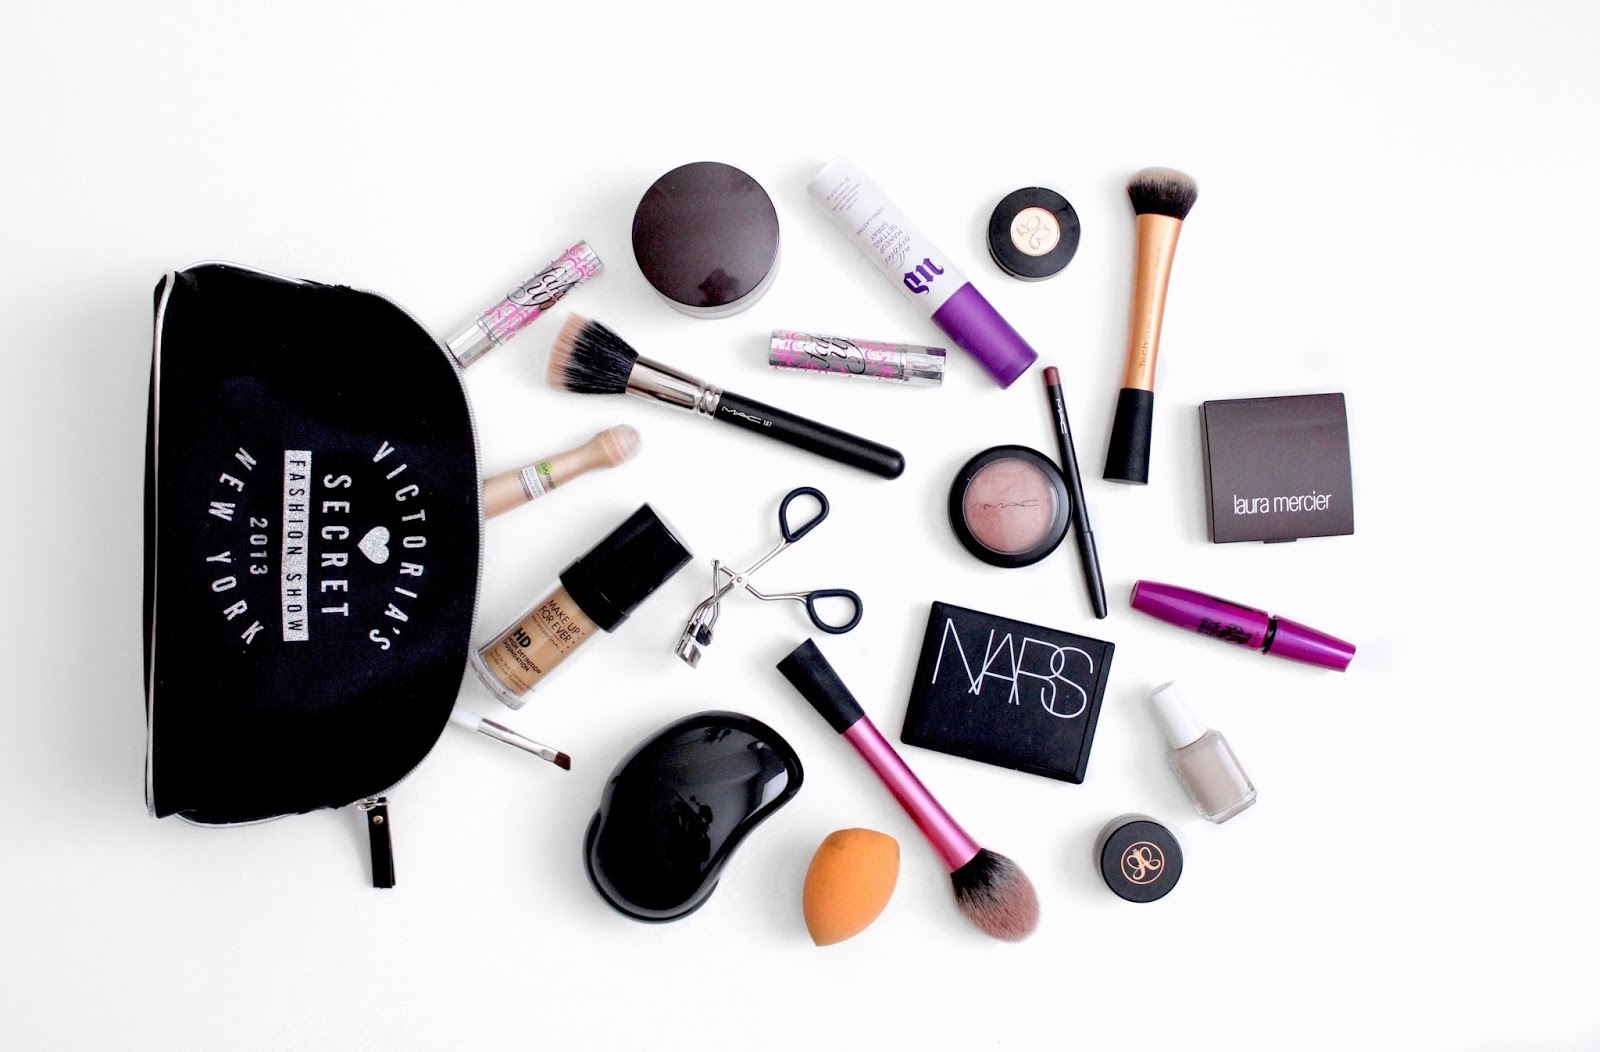 What's in My Makeup Bag, by Laura Whitmore